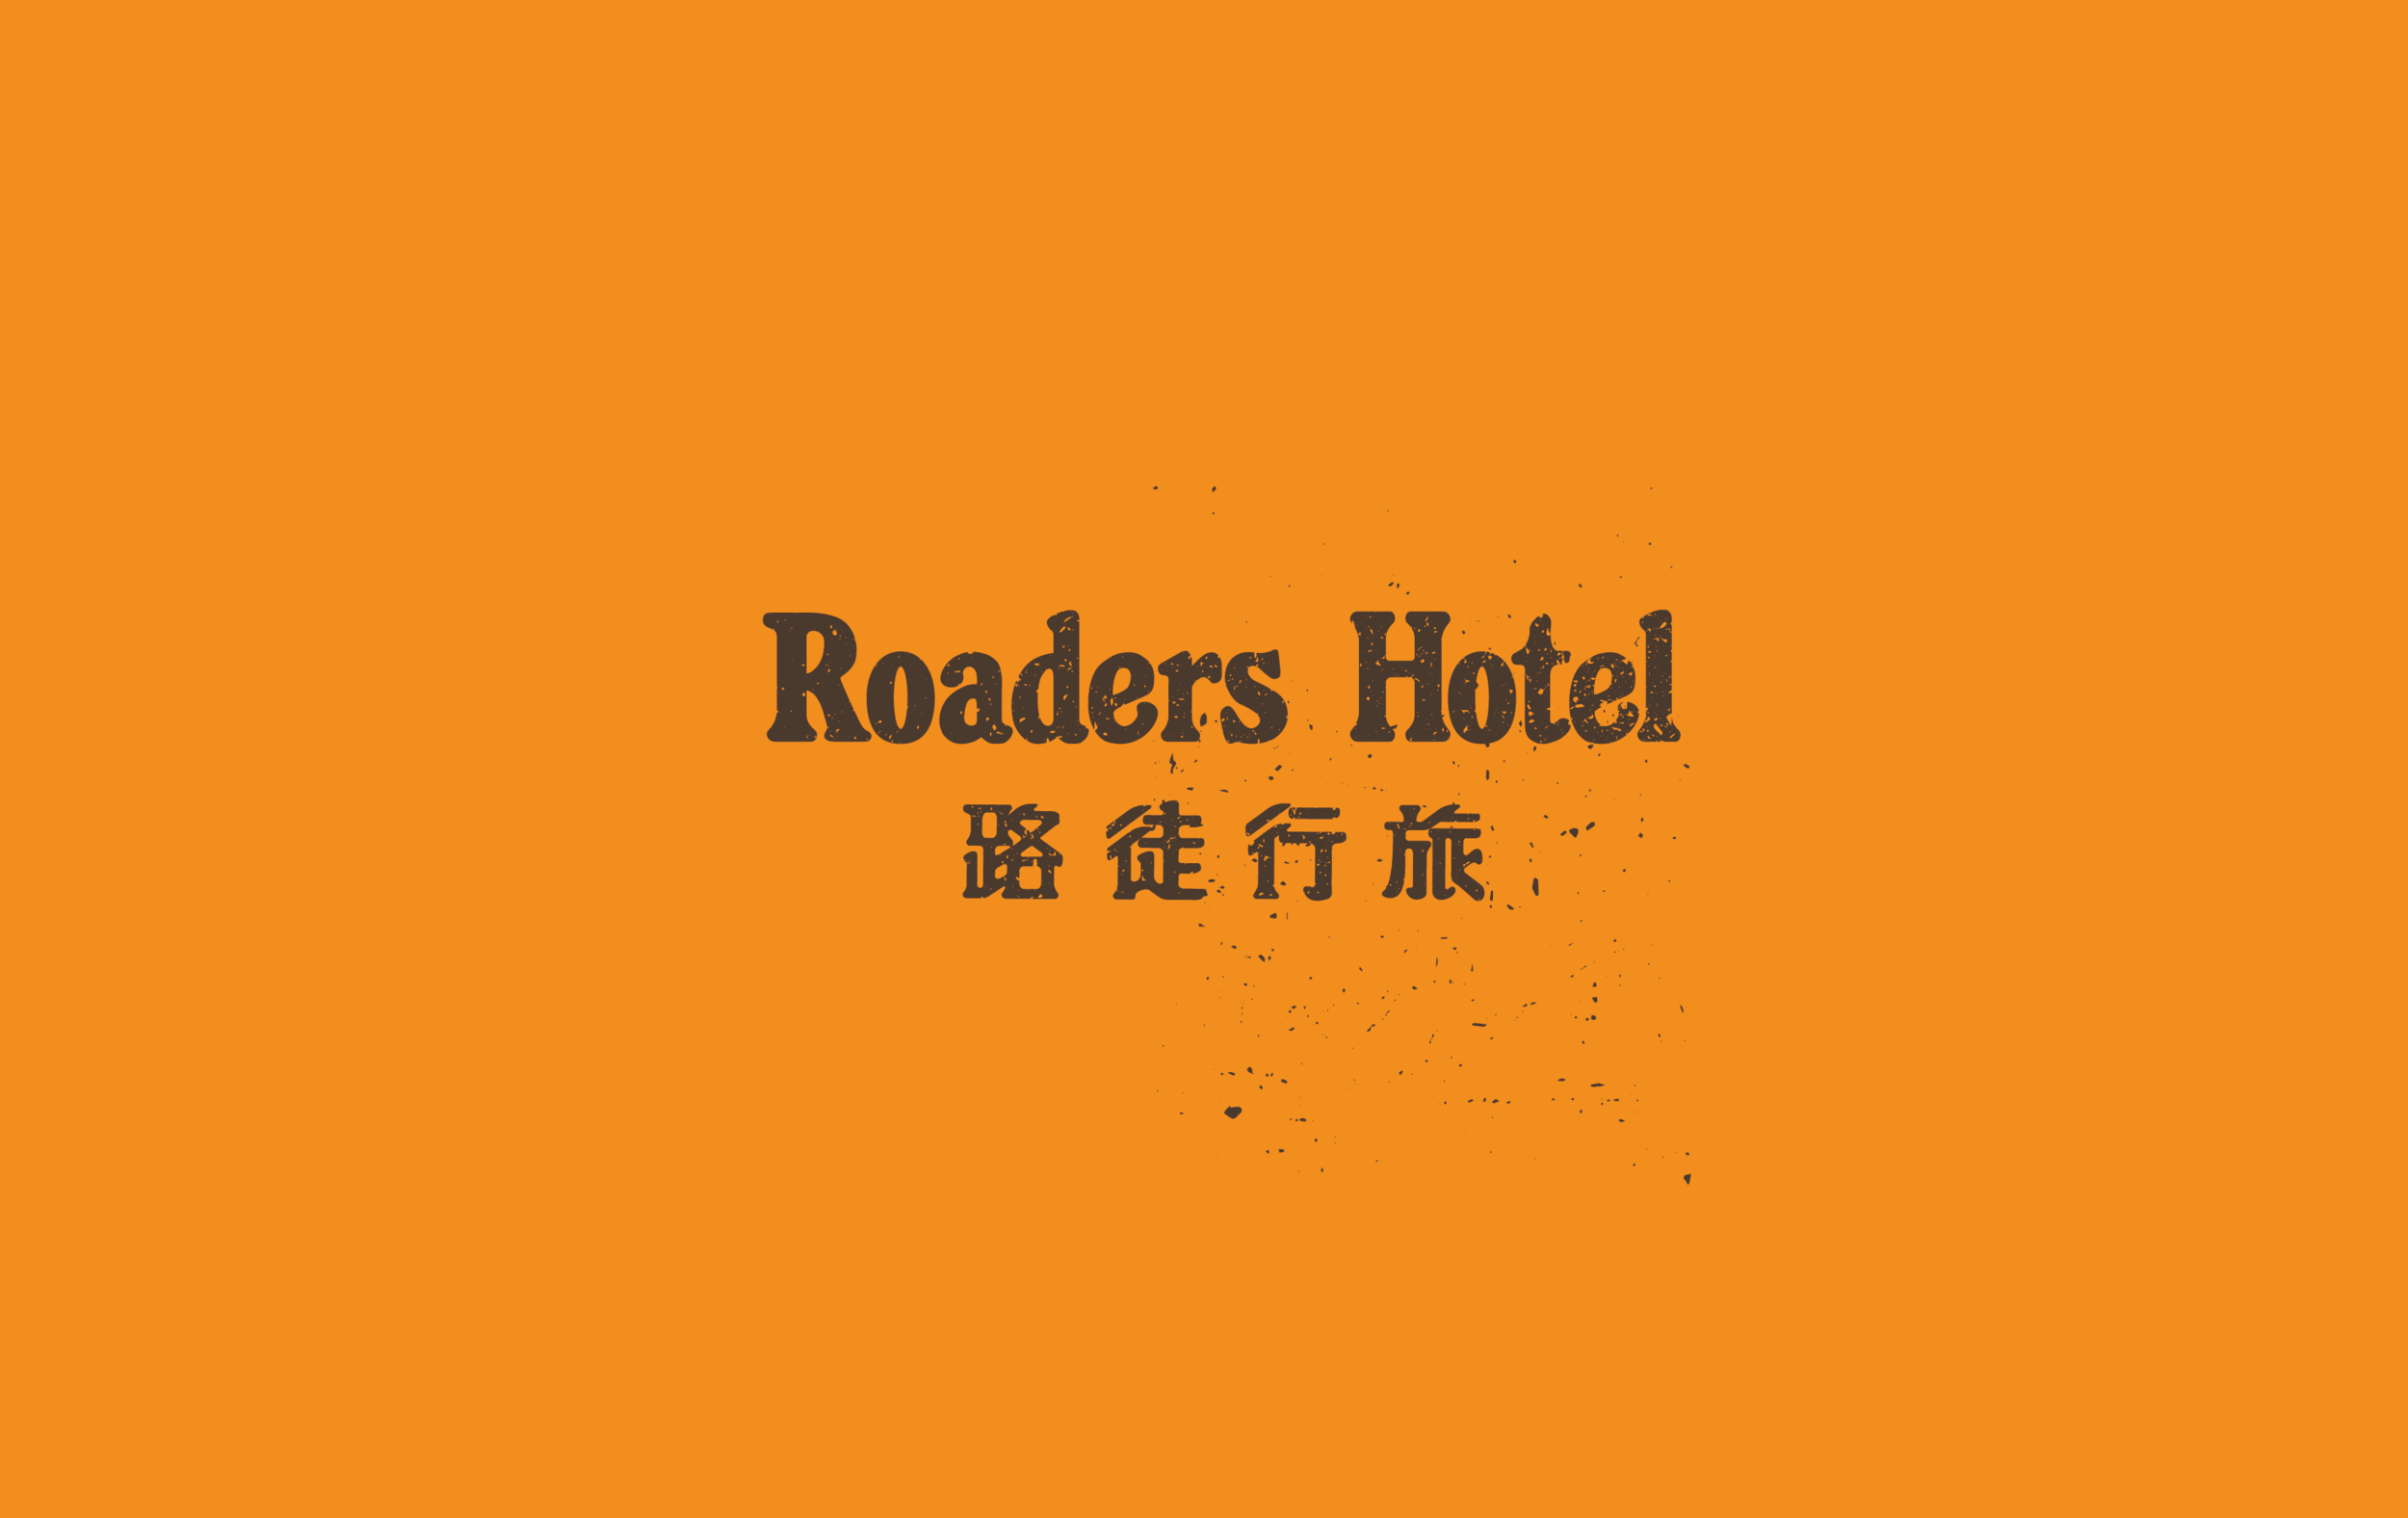 roaders hotel vi system-02.png